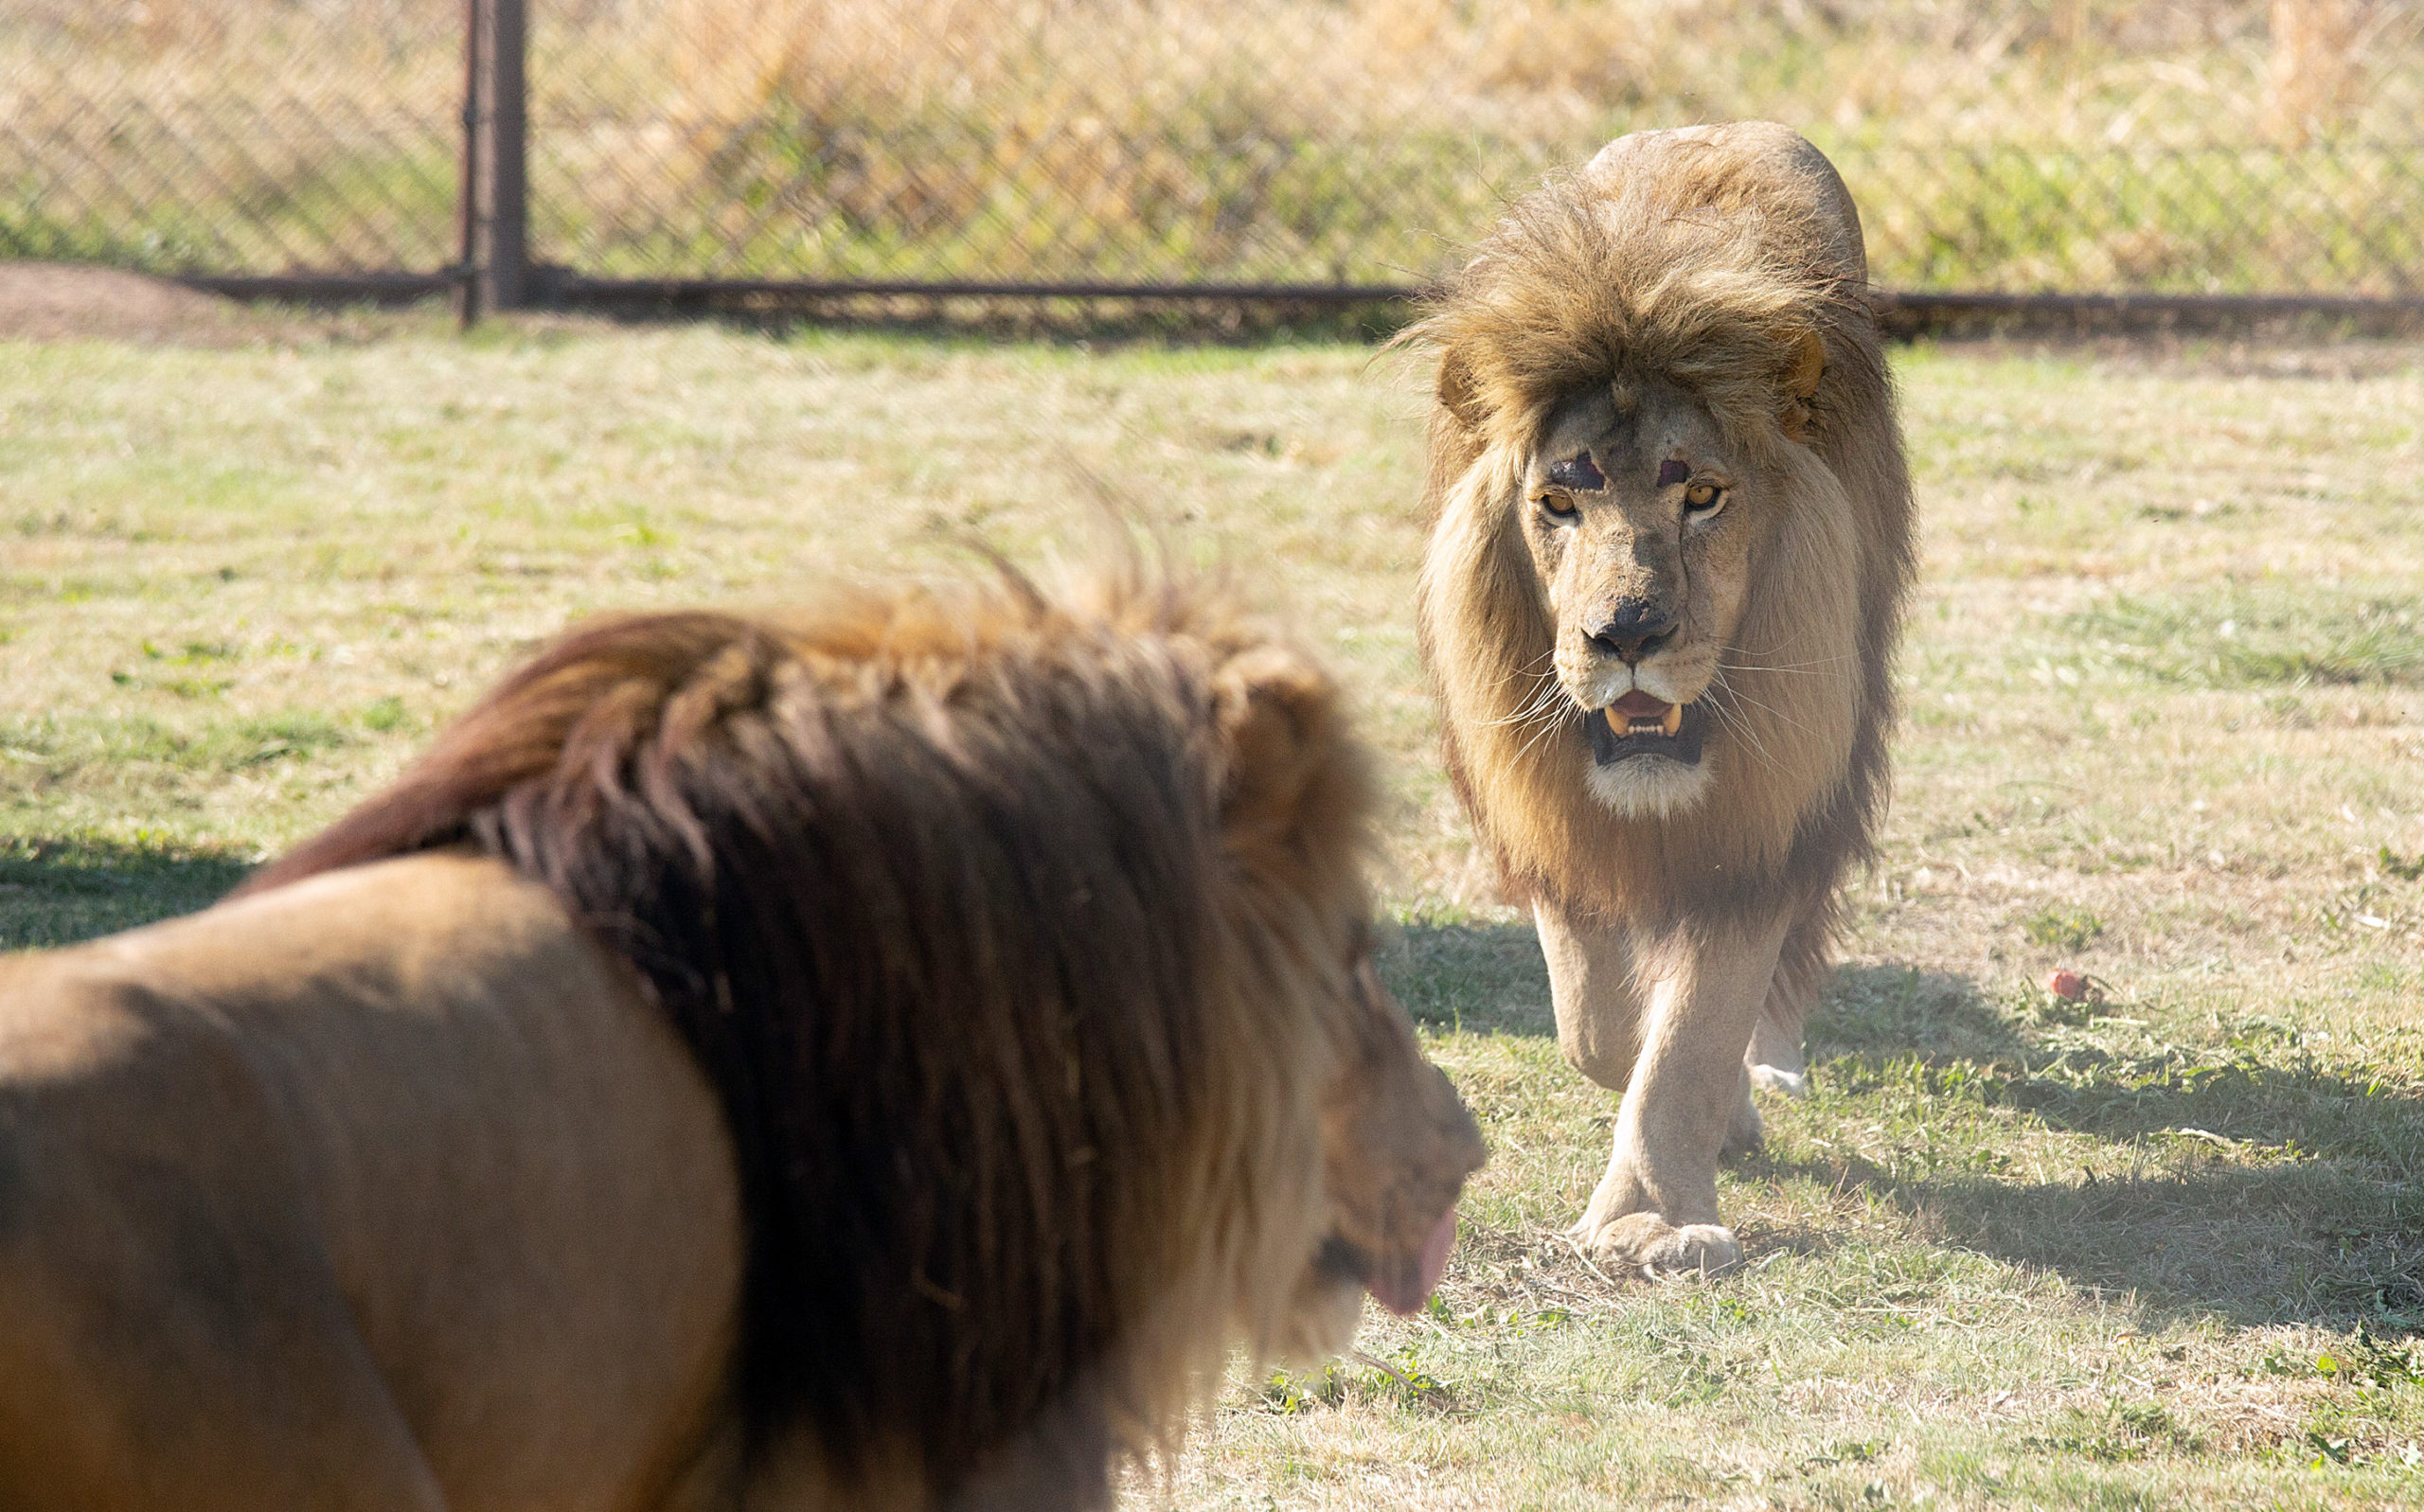 BIG CATS, CRUEL LIVES: Better times for lions Tom and Samson — but South Africa's captive breeding issue remains